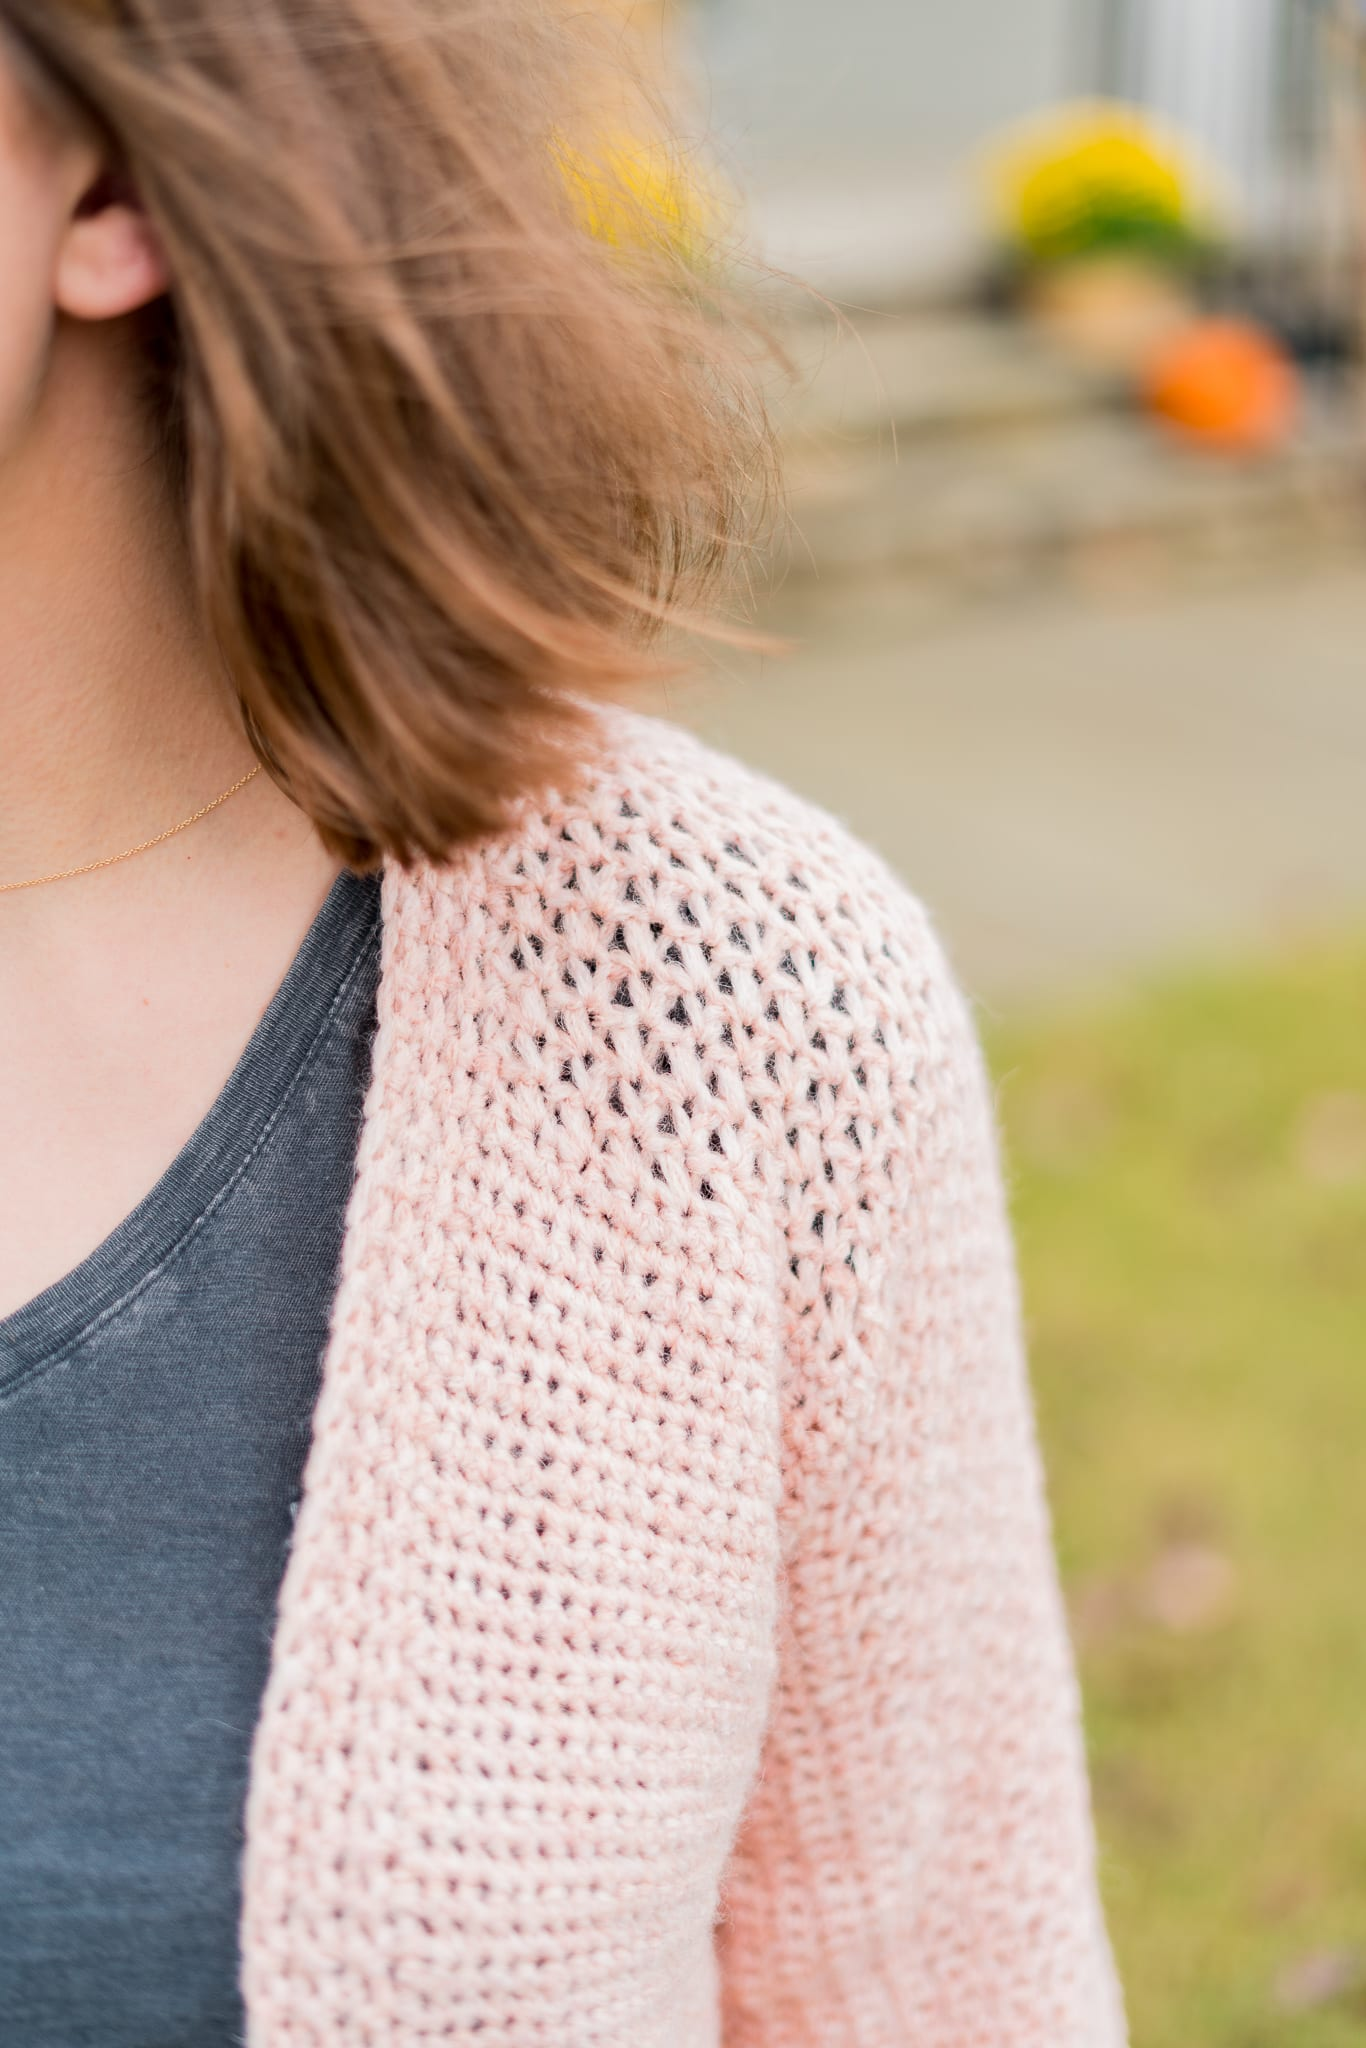 Easy crochet cardigan with lace detailing on the shoulder.